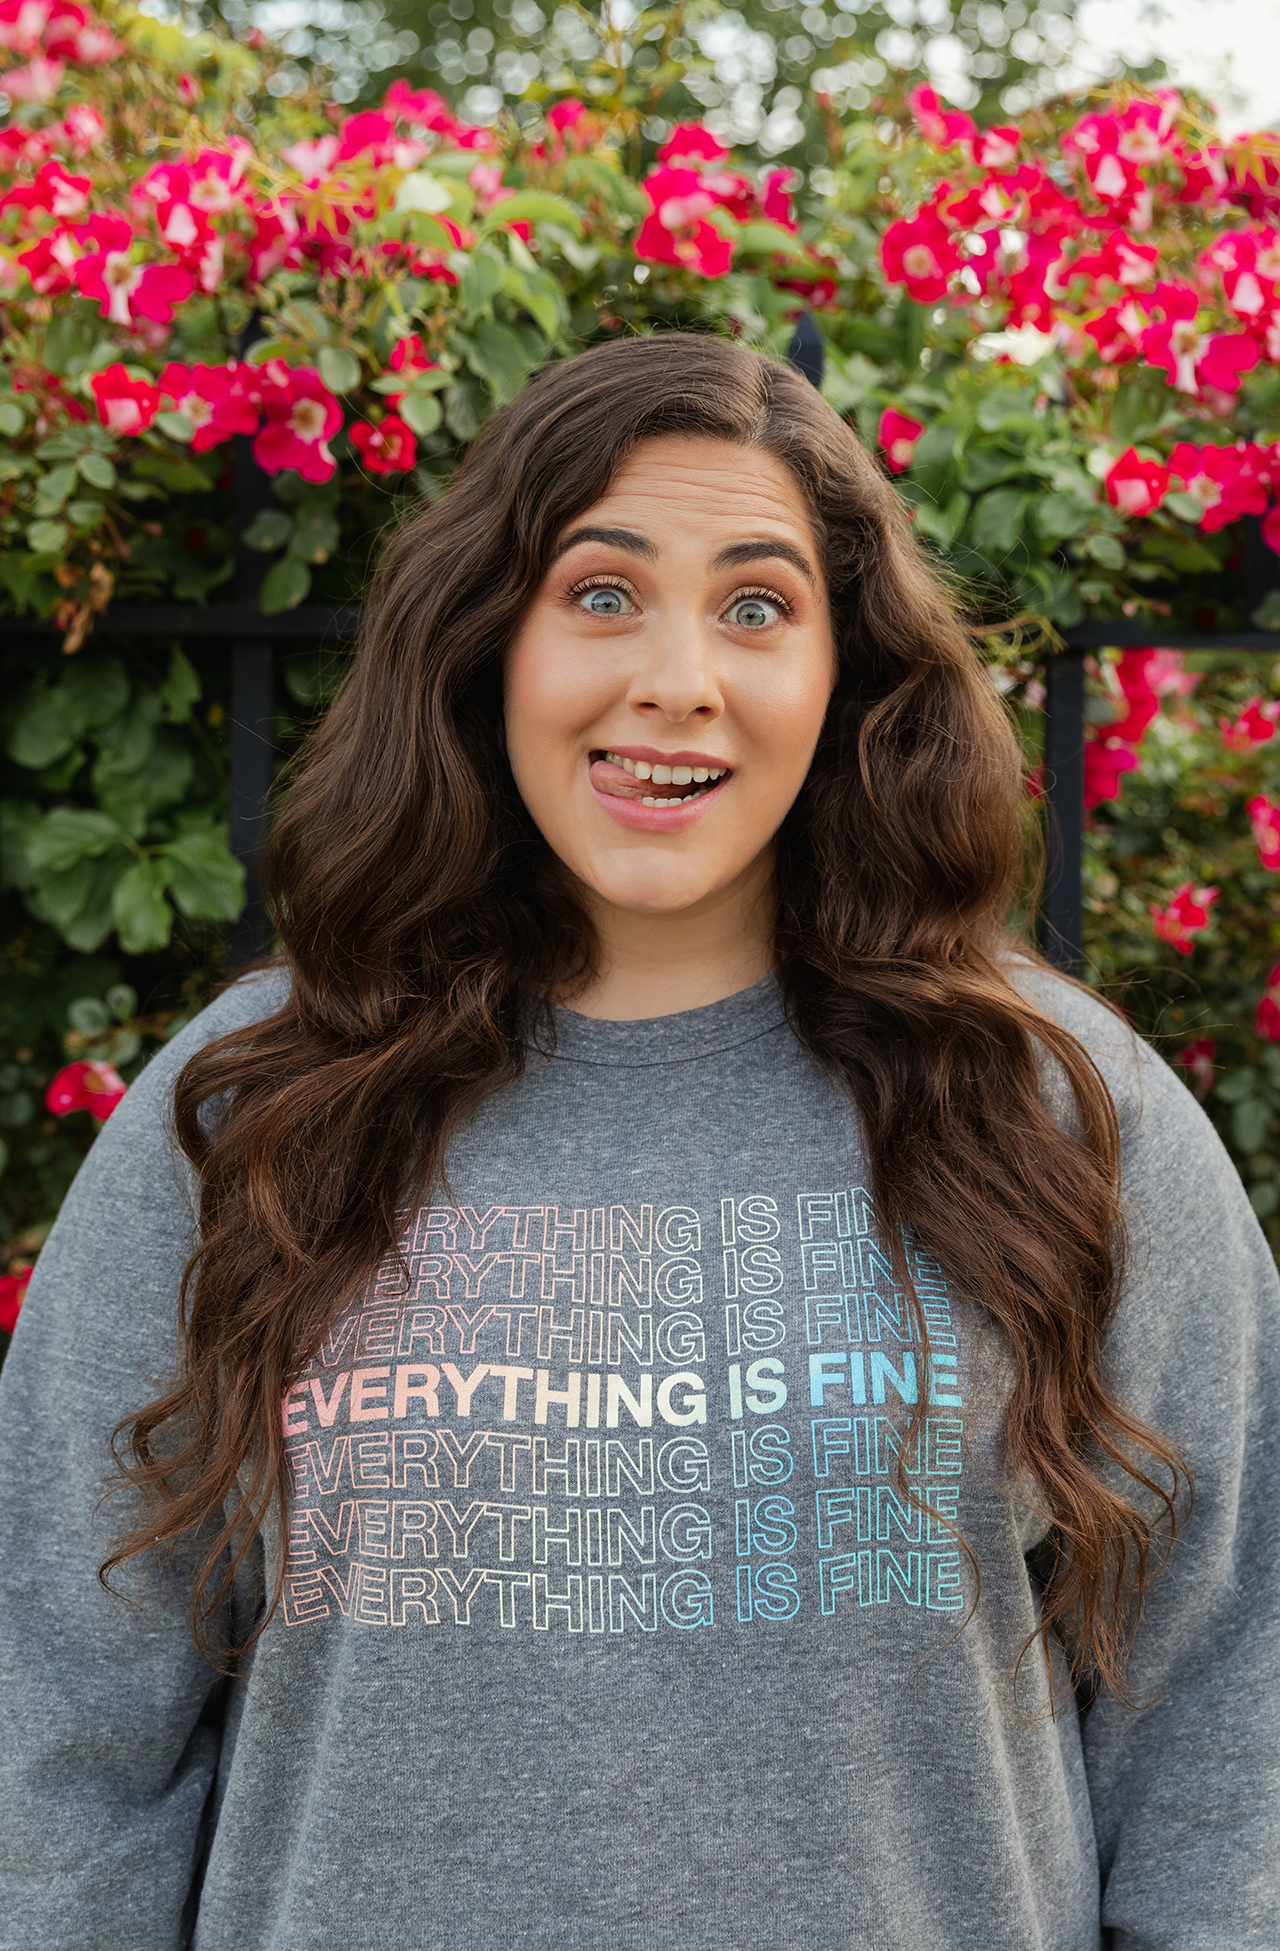 everything is fine sweatshirt